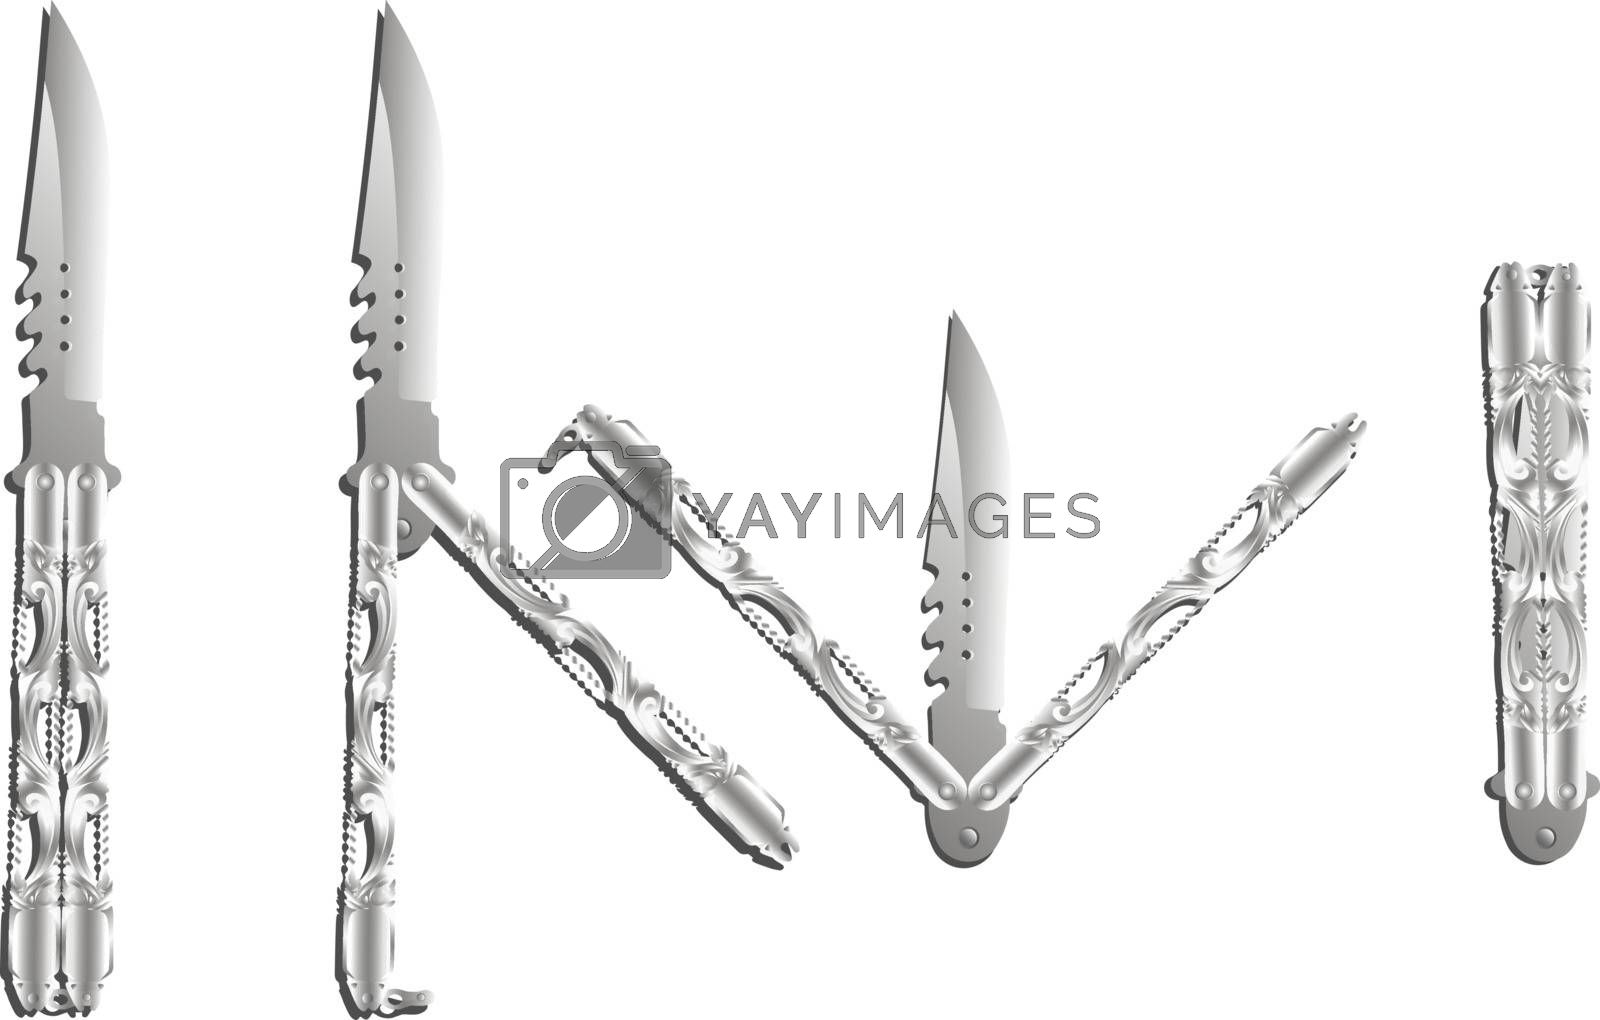 Isolated beautiful realistic silver balisong or butterfly knife in four different positions